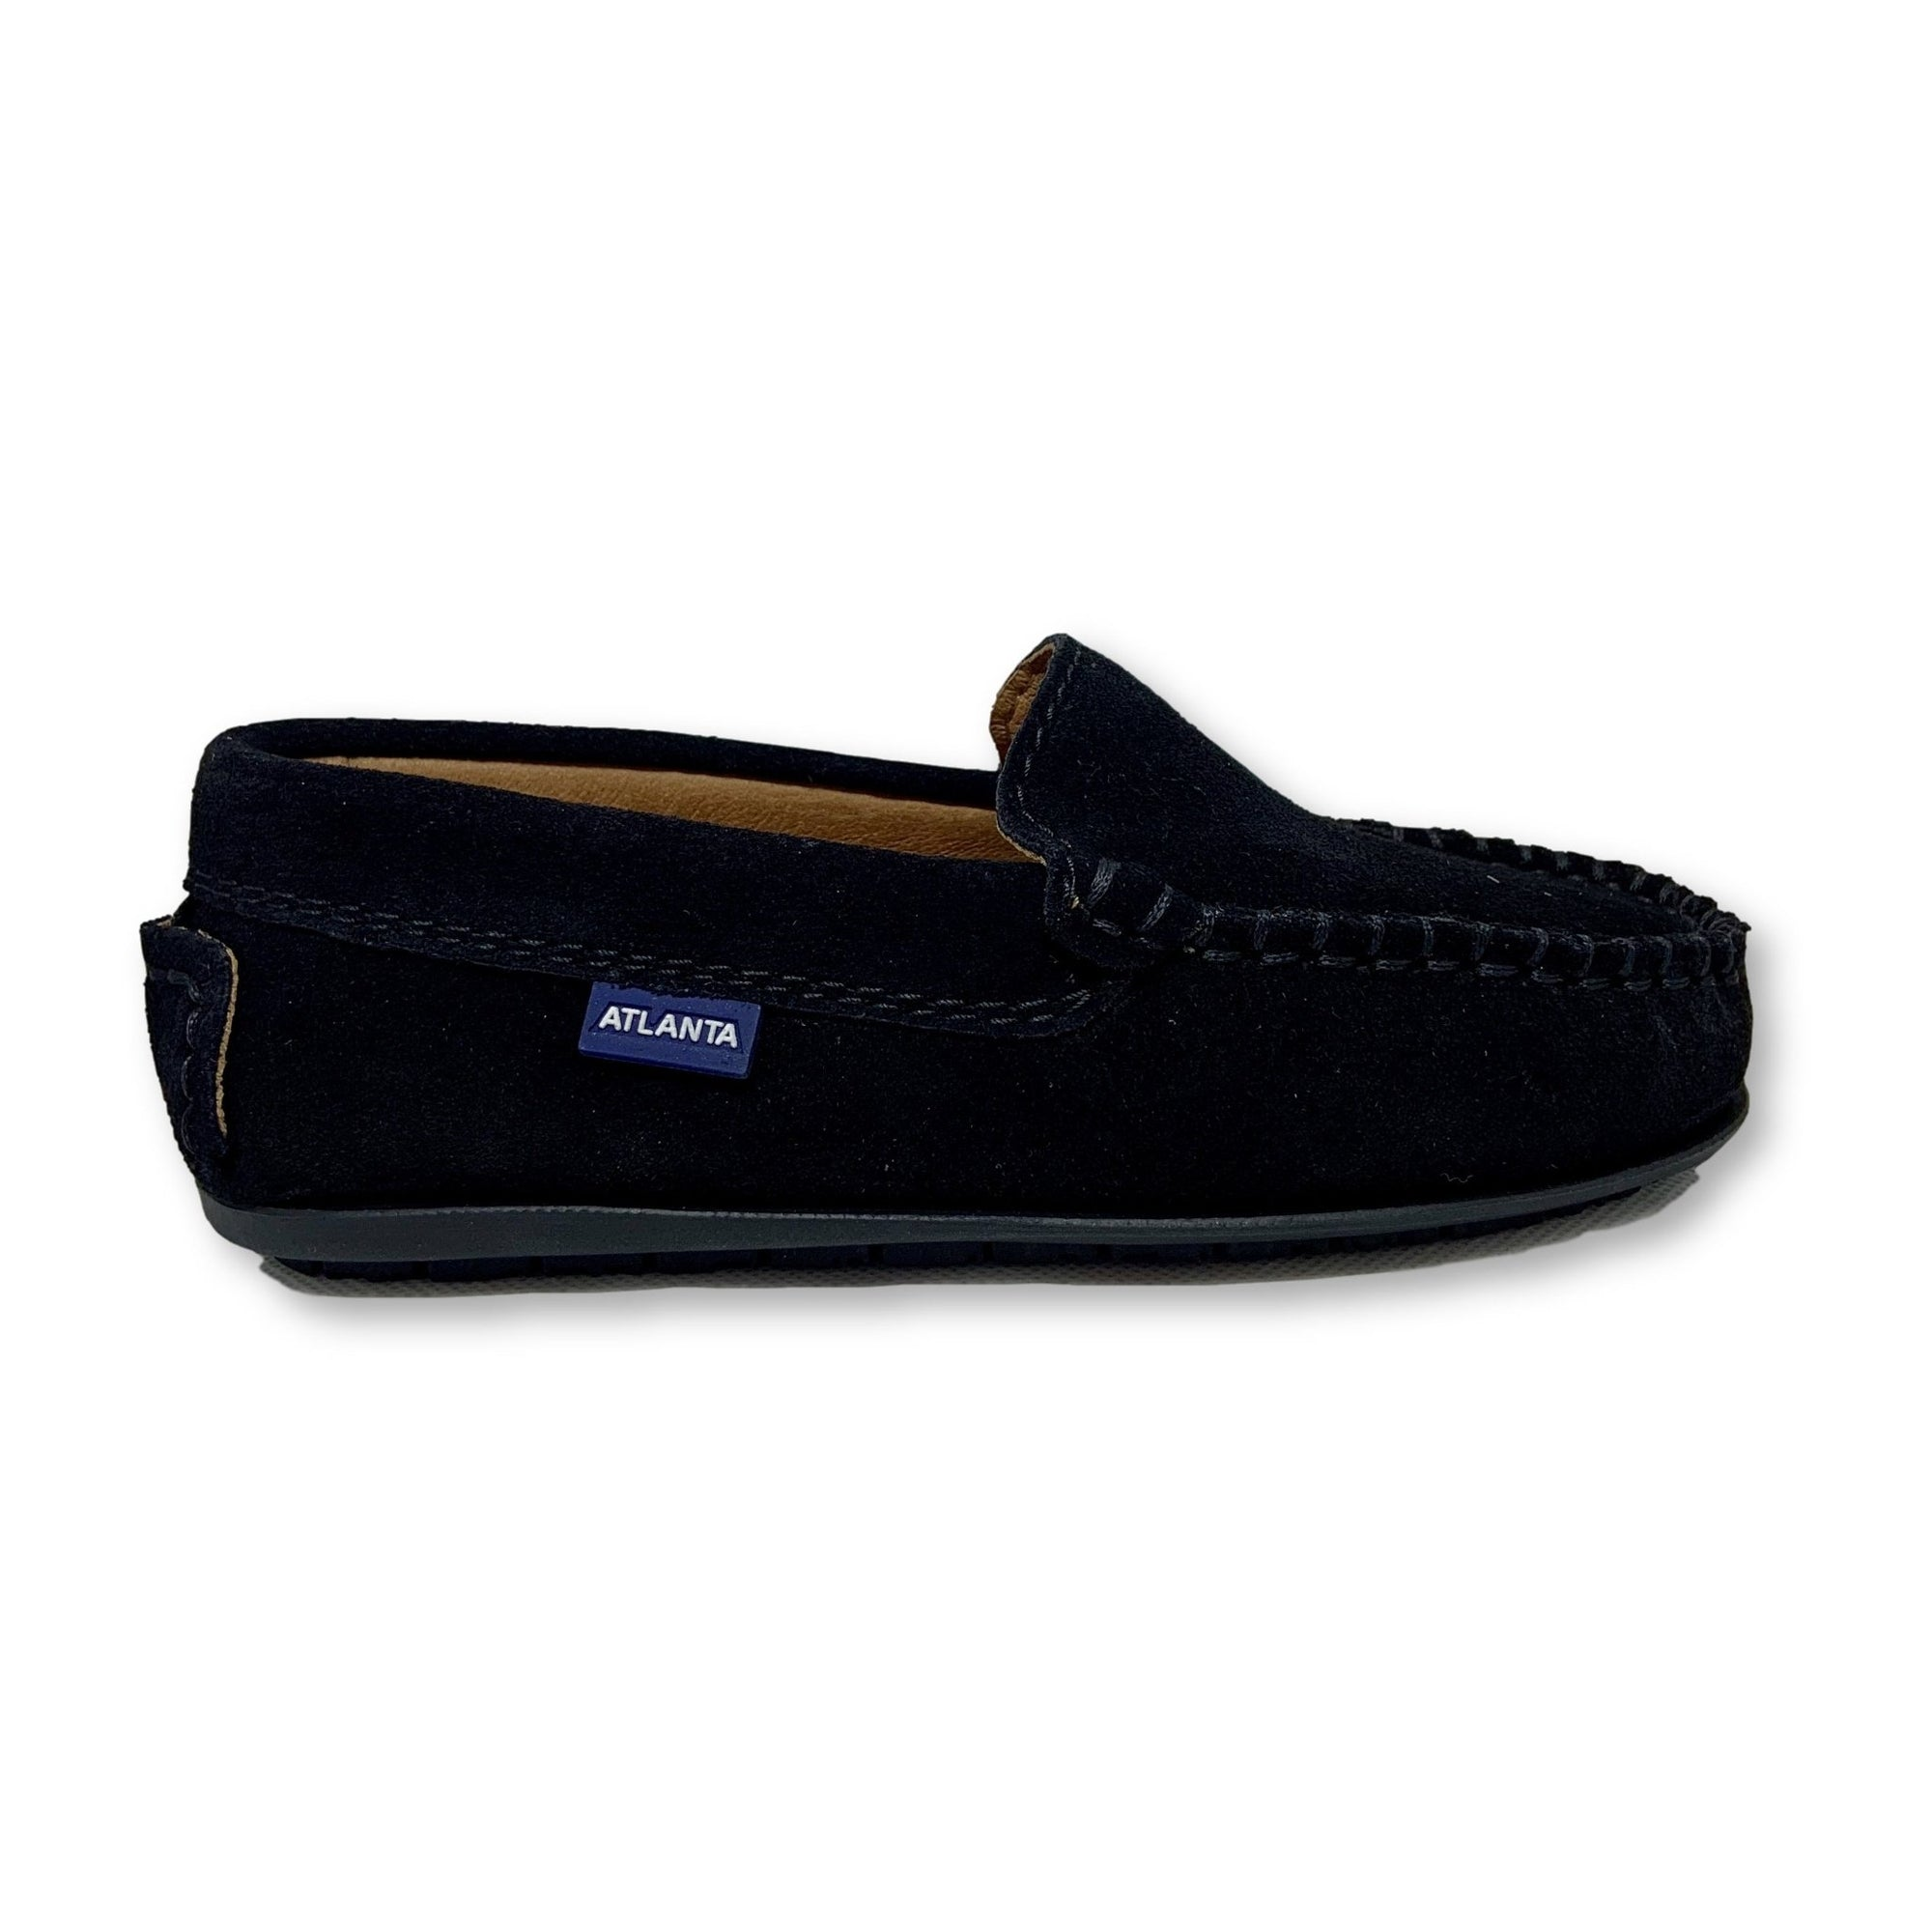 Atlanta Mocassin Black Suede Loafer-Tassel Children Shoes